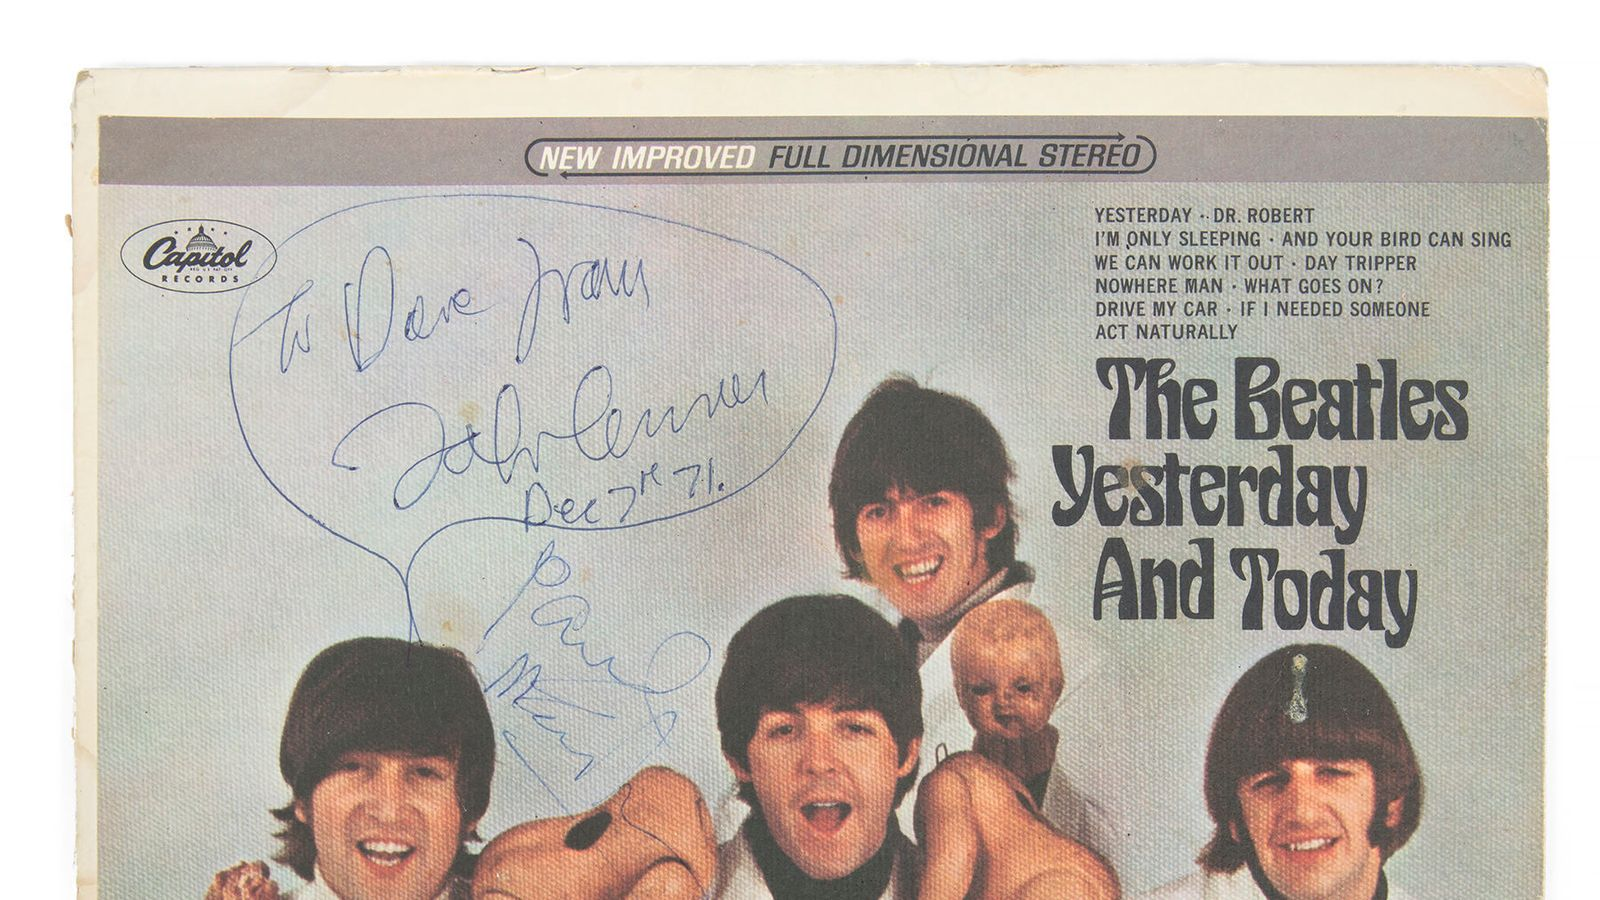 Rare Beatles album once owned by John Lennon to be auctioned